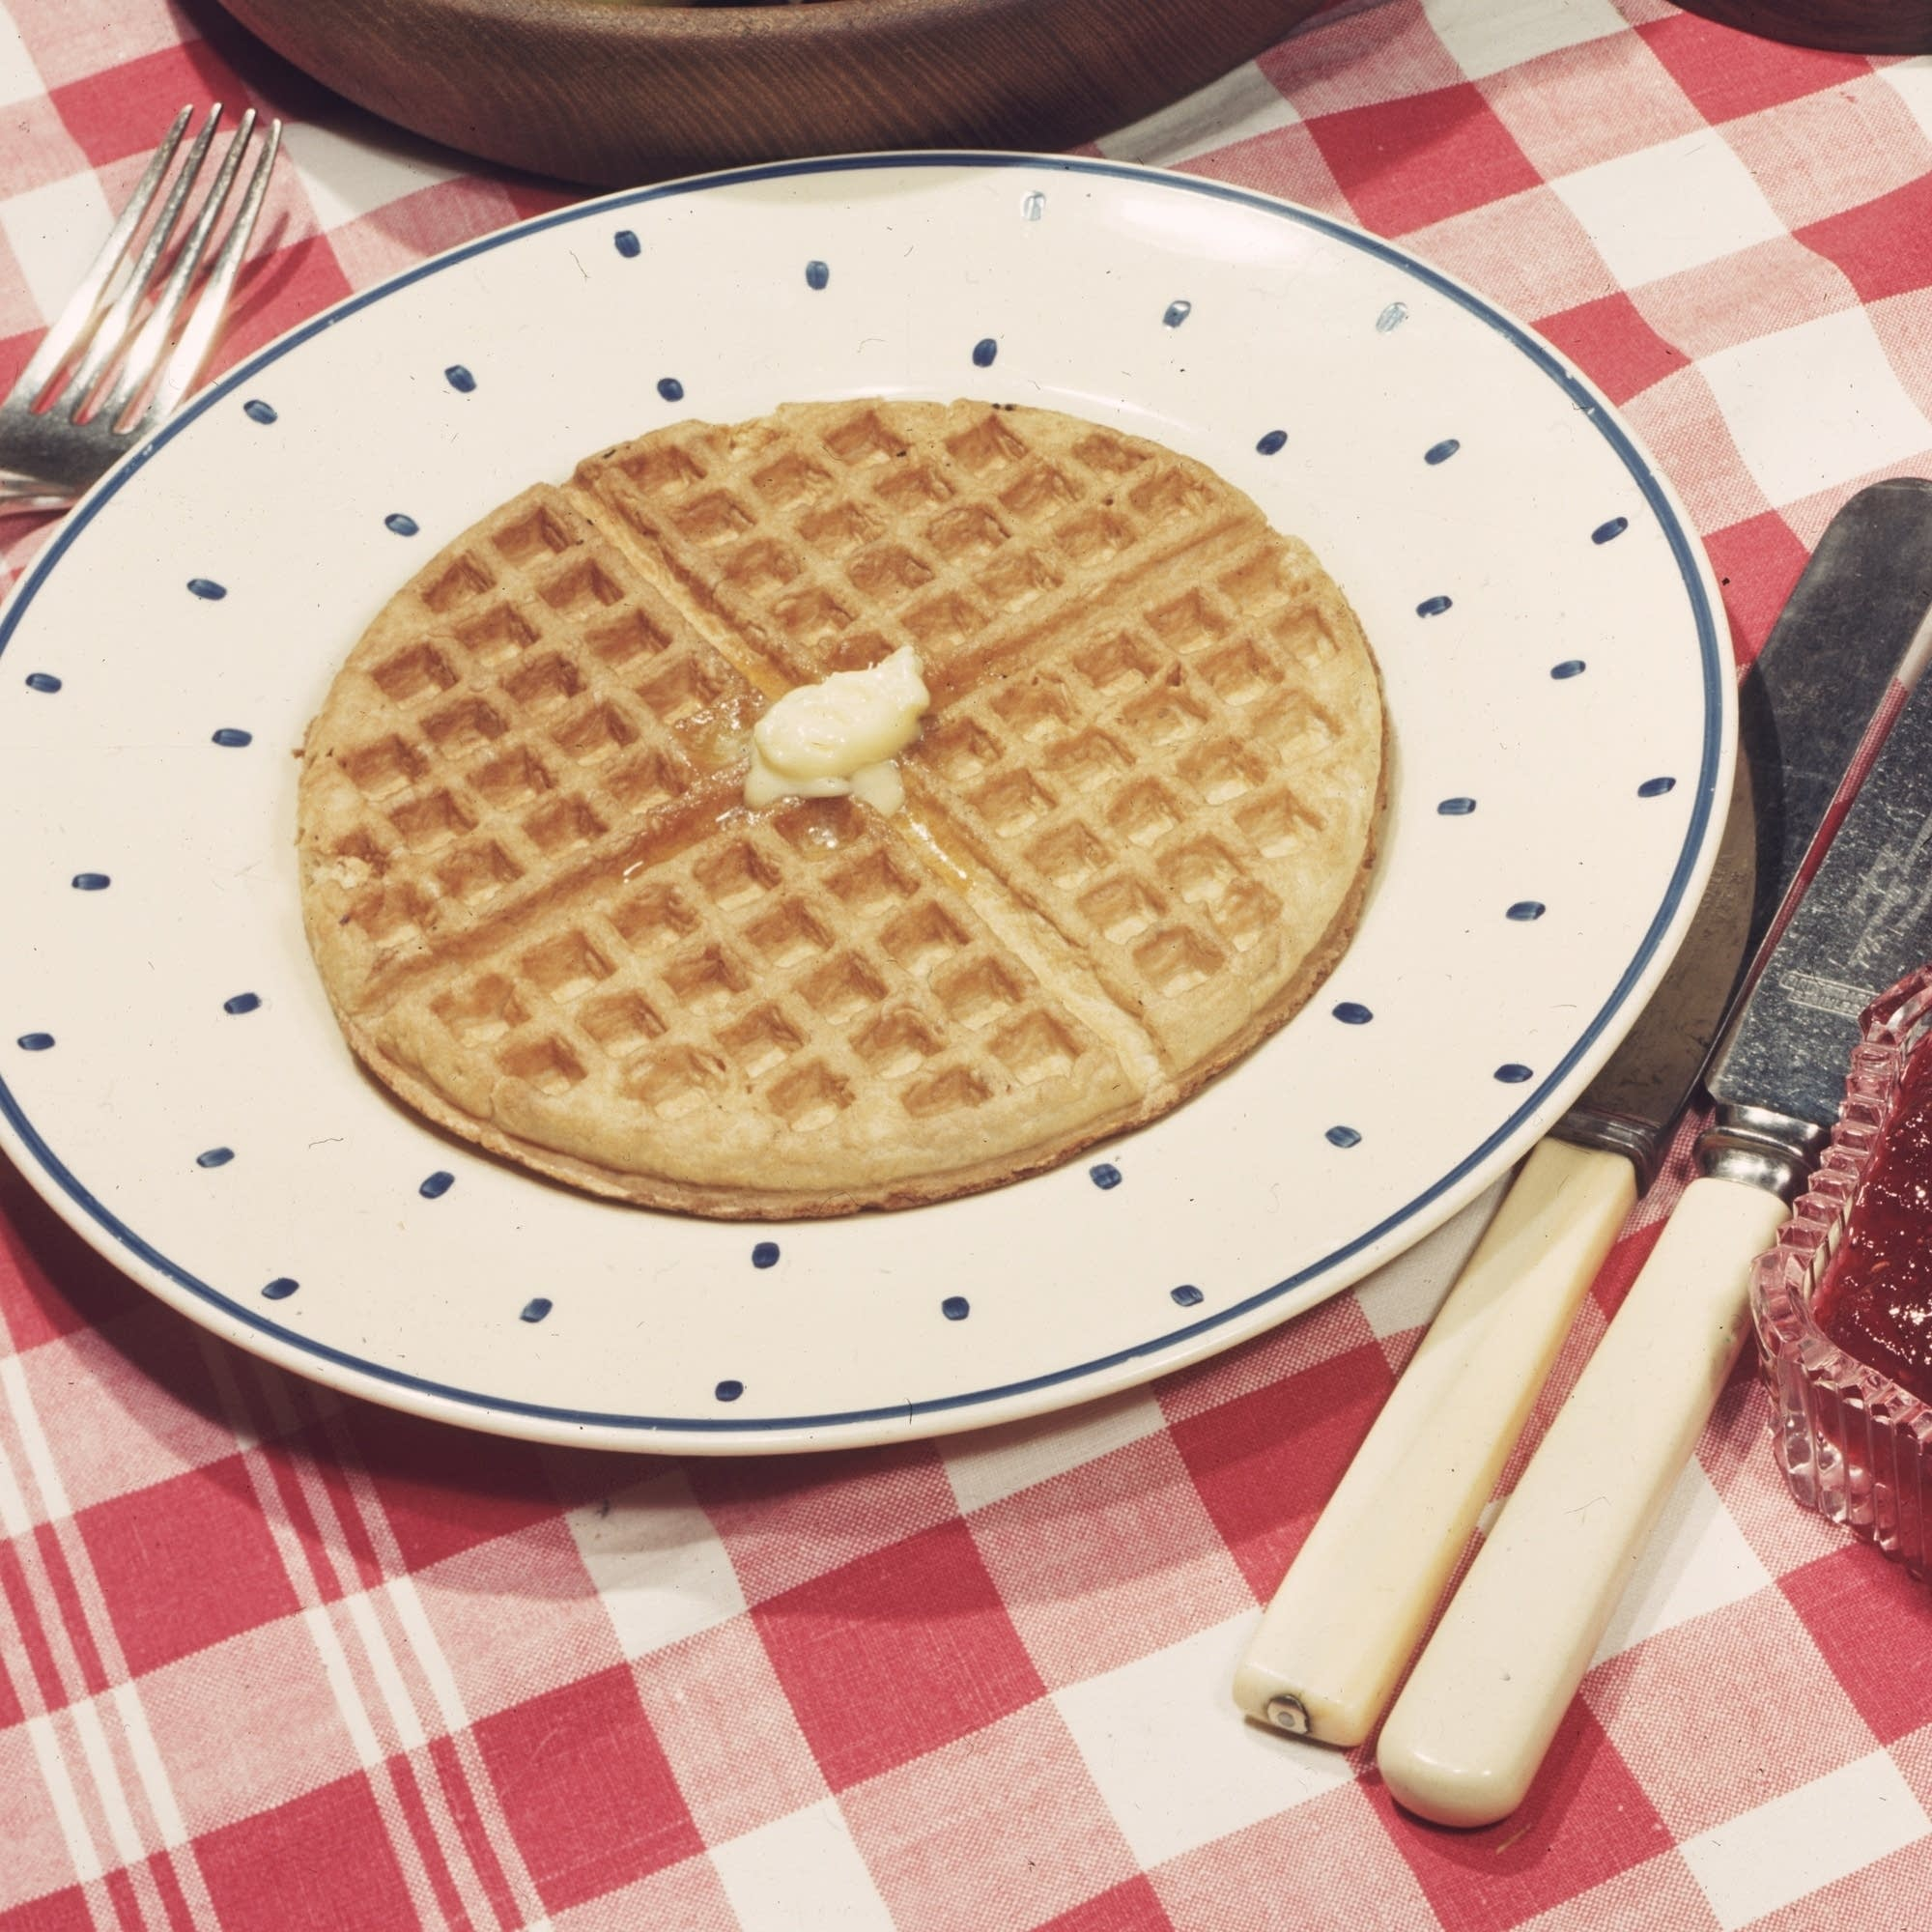 A plate of buttered waffles made in an Easywork waffle iron.